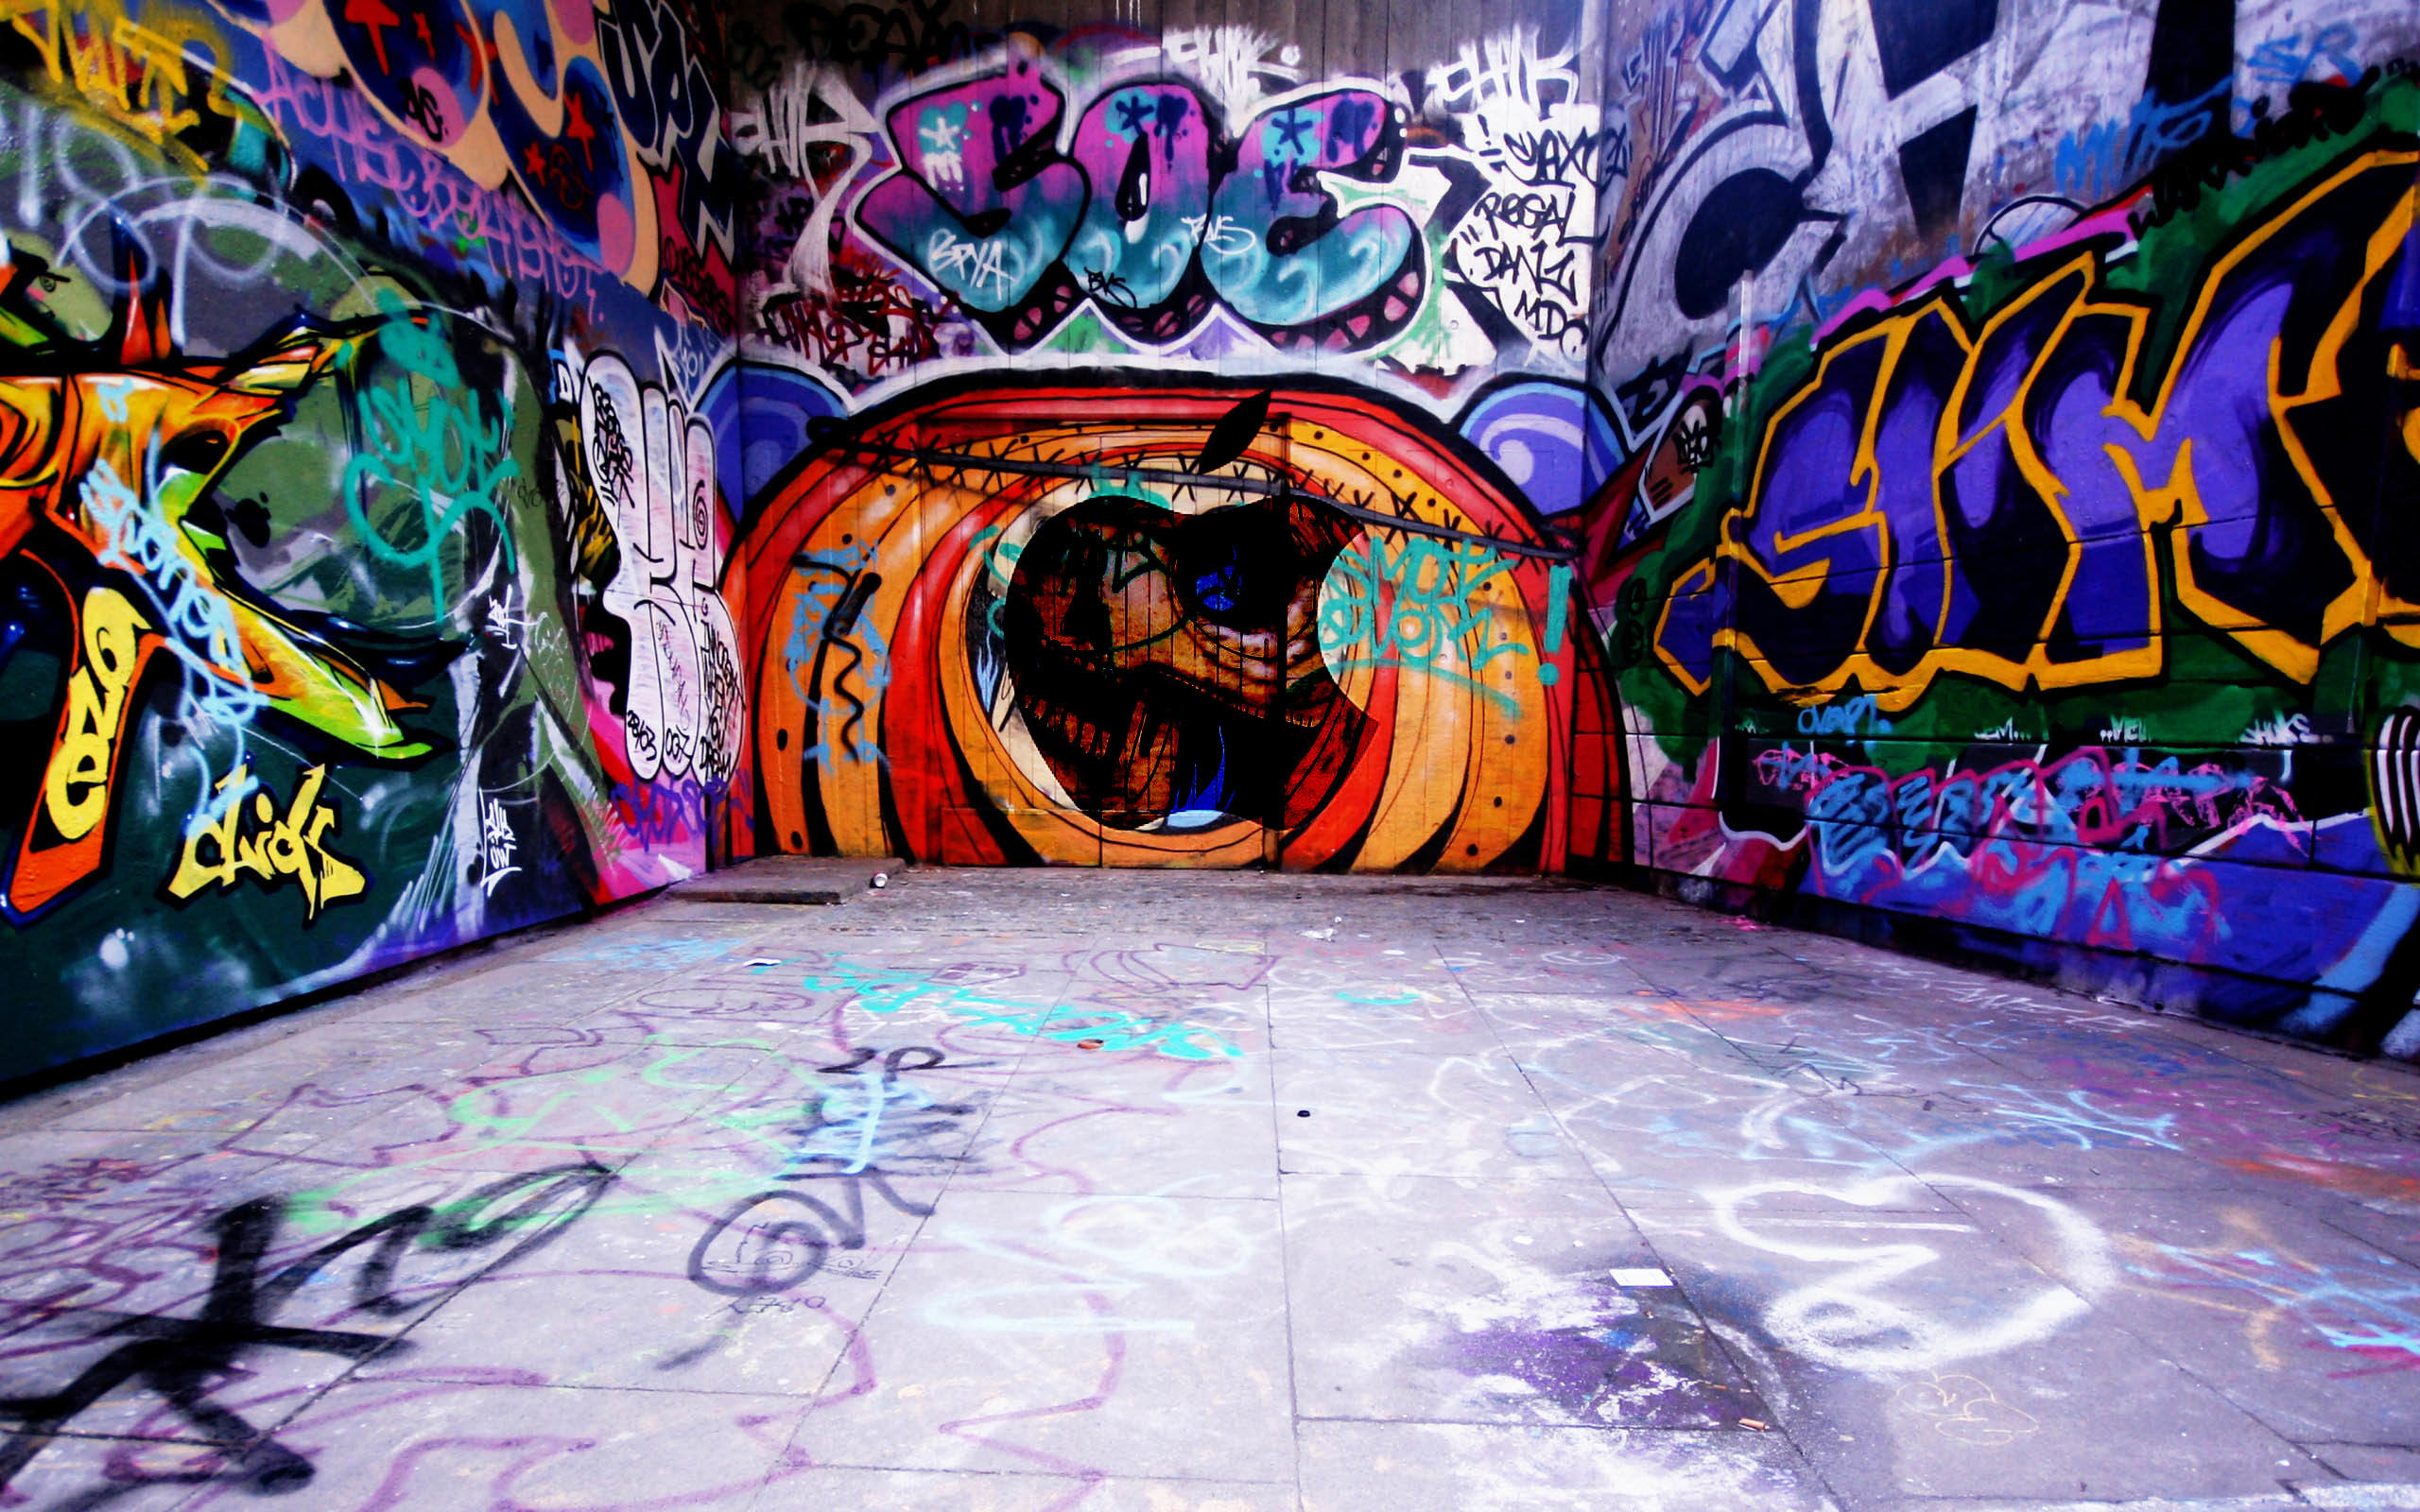 Explore Graffiti Room, Graffiti Wallpaper, and more!